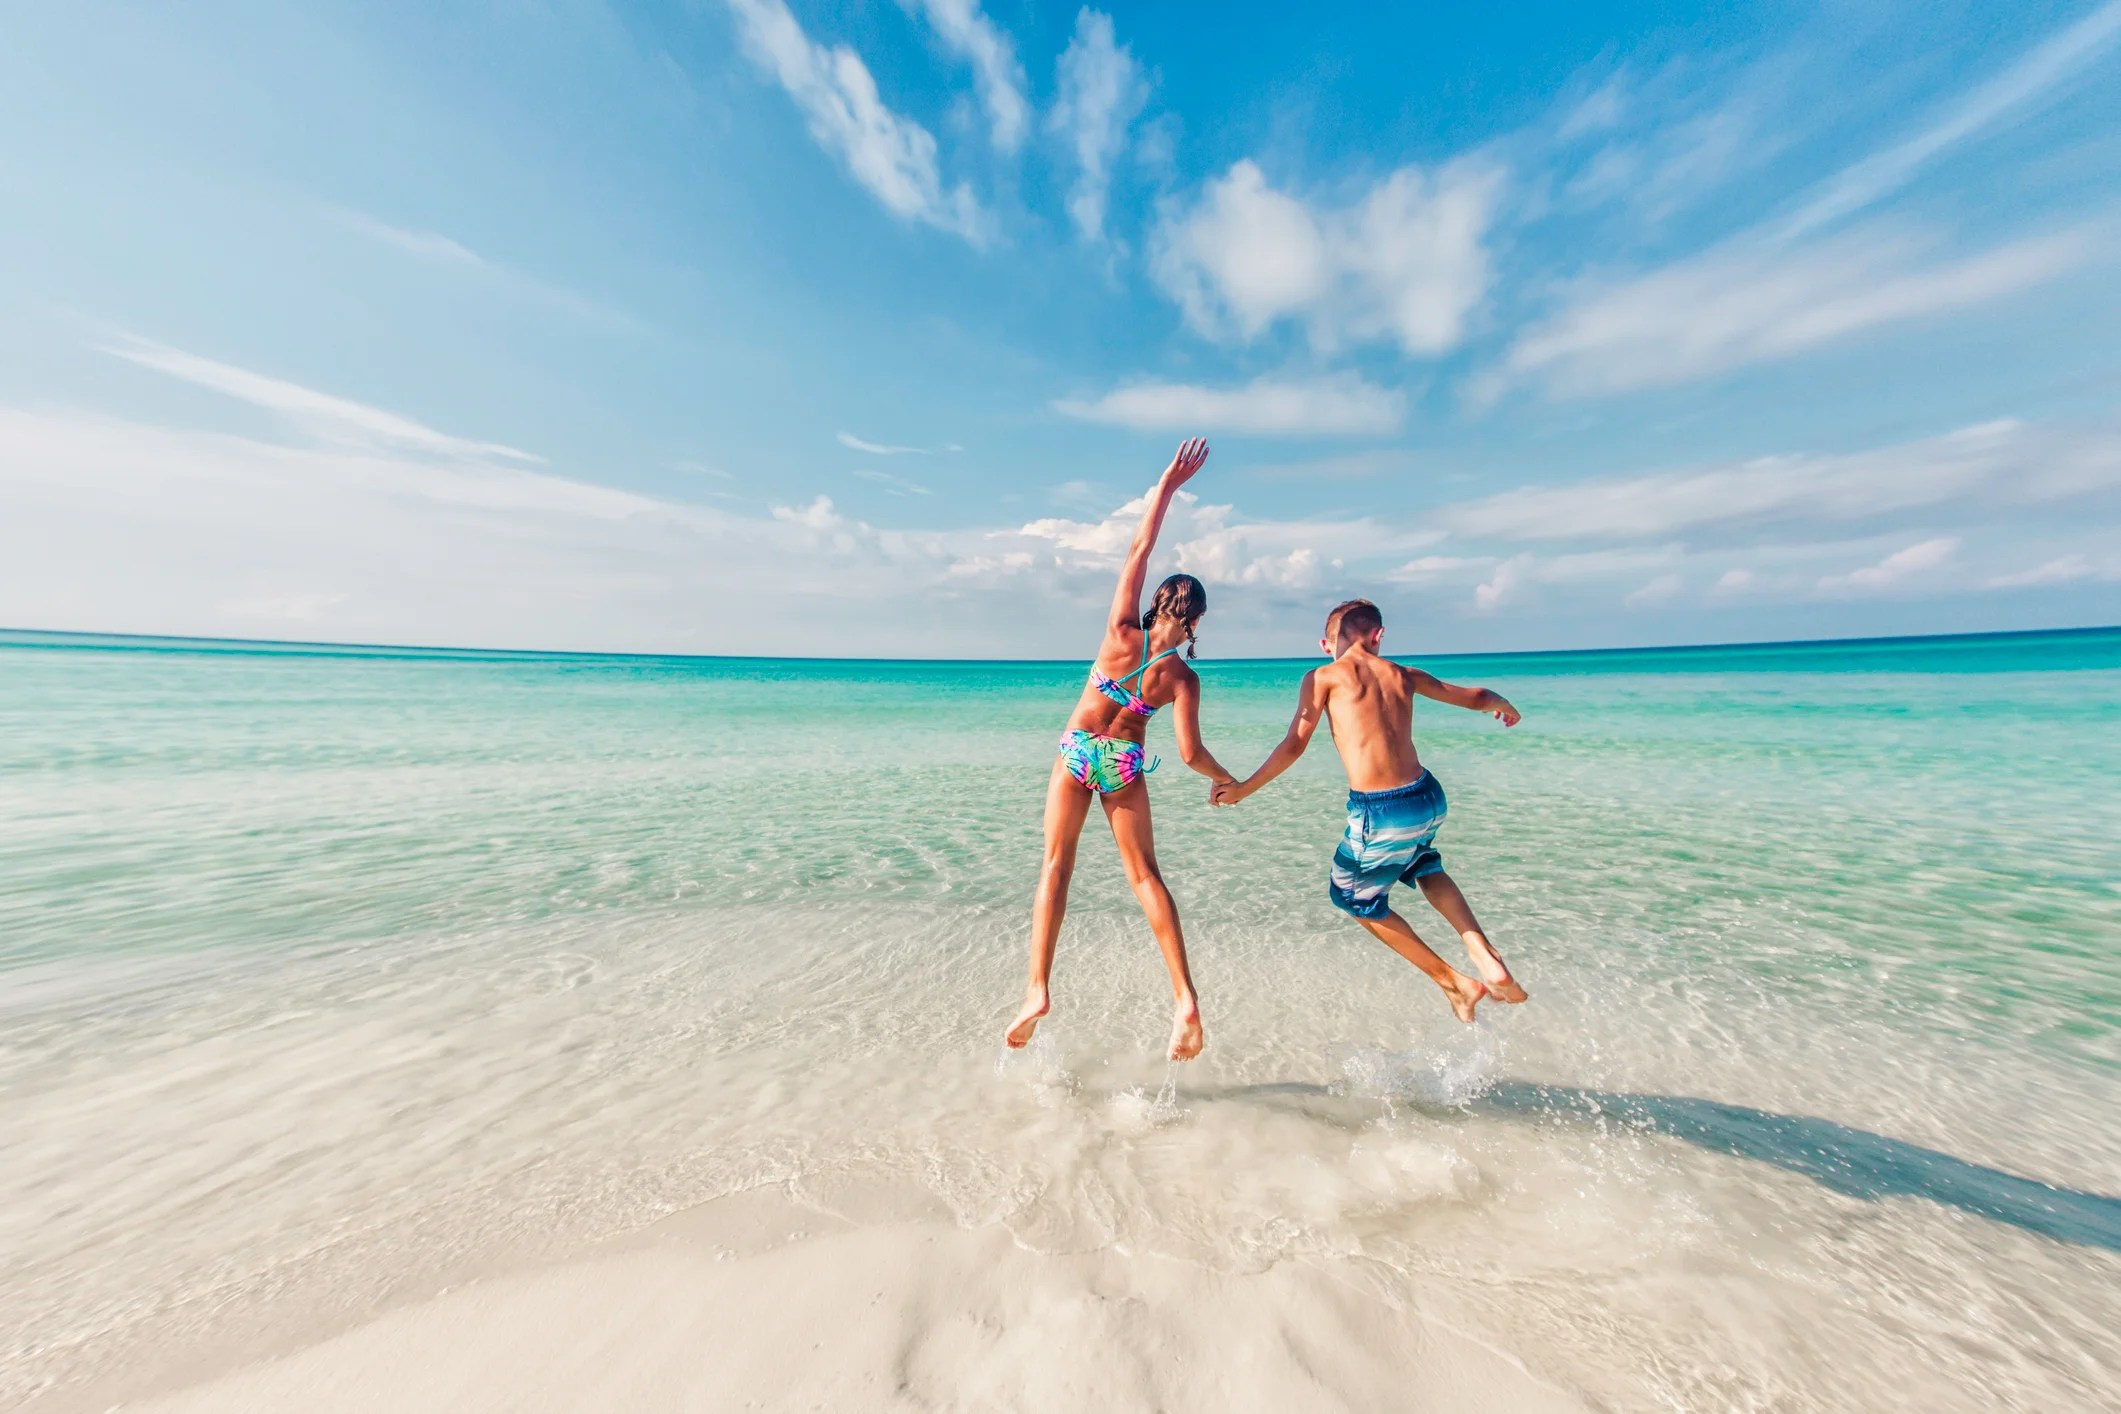 Save On Family Vacations: Best Daily Getaways Deals in 2019